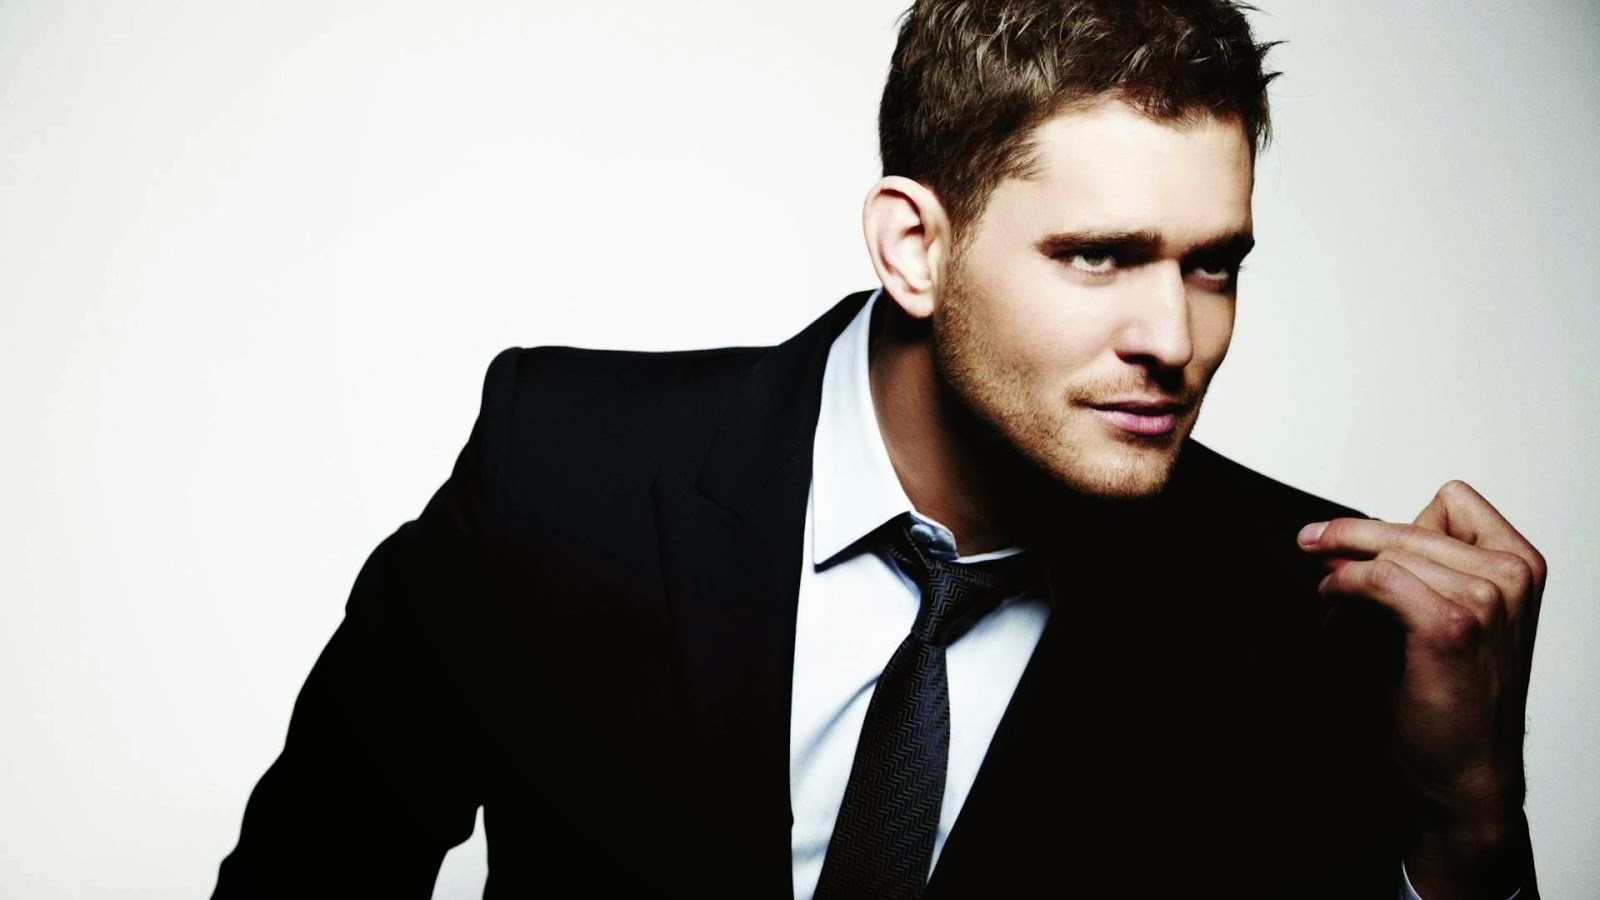 michael buble - photo #38